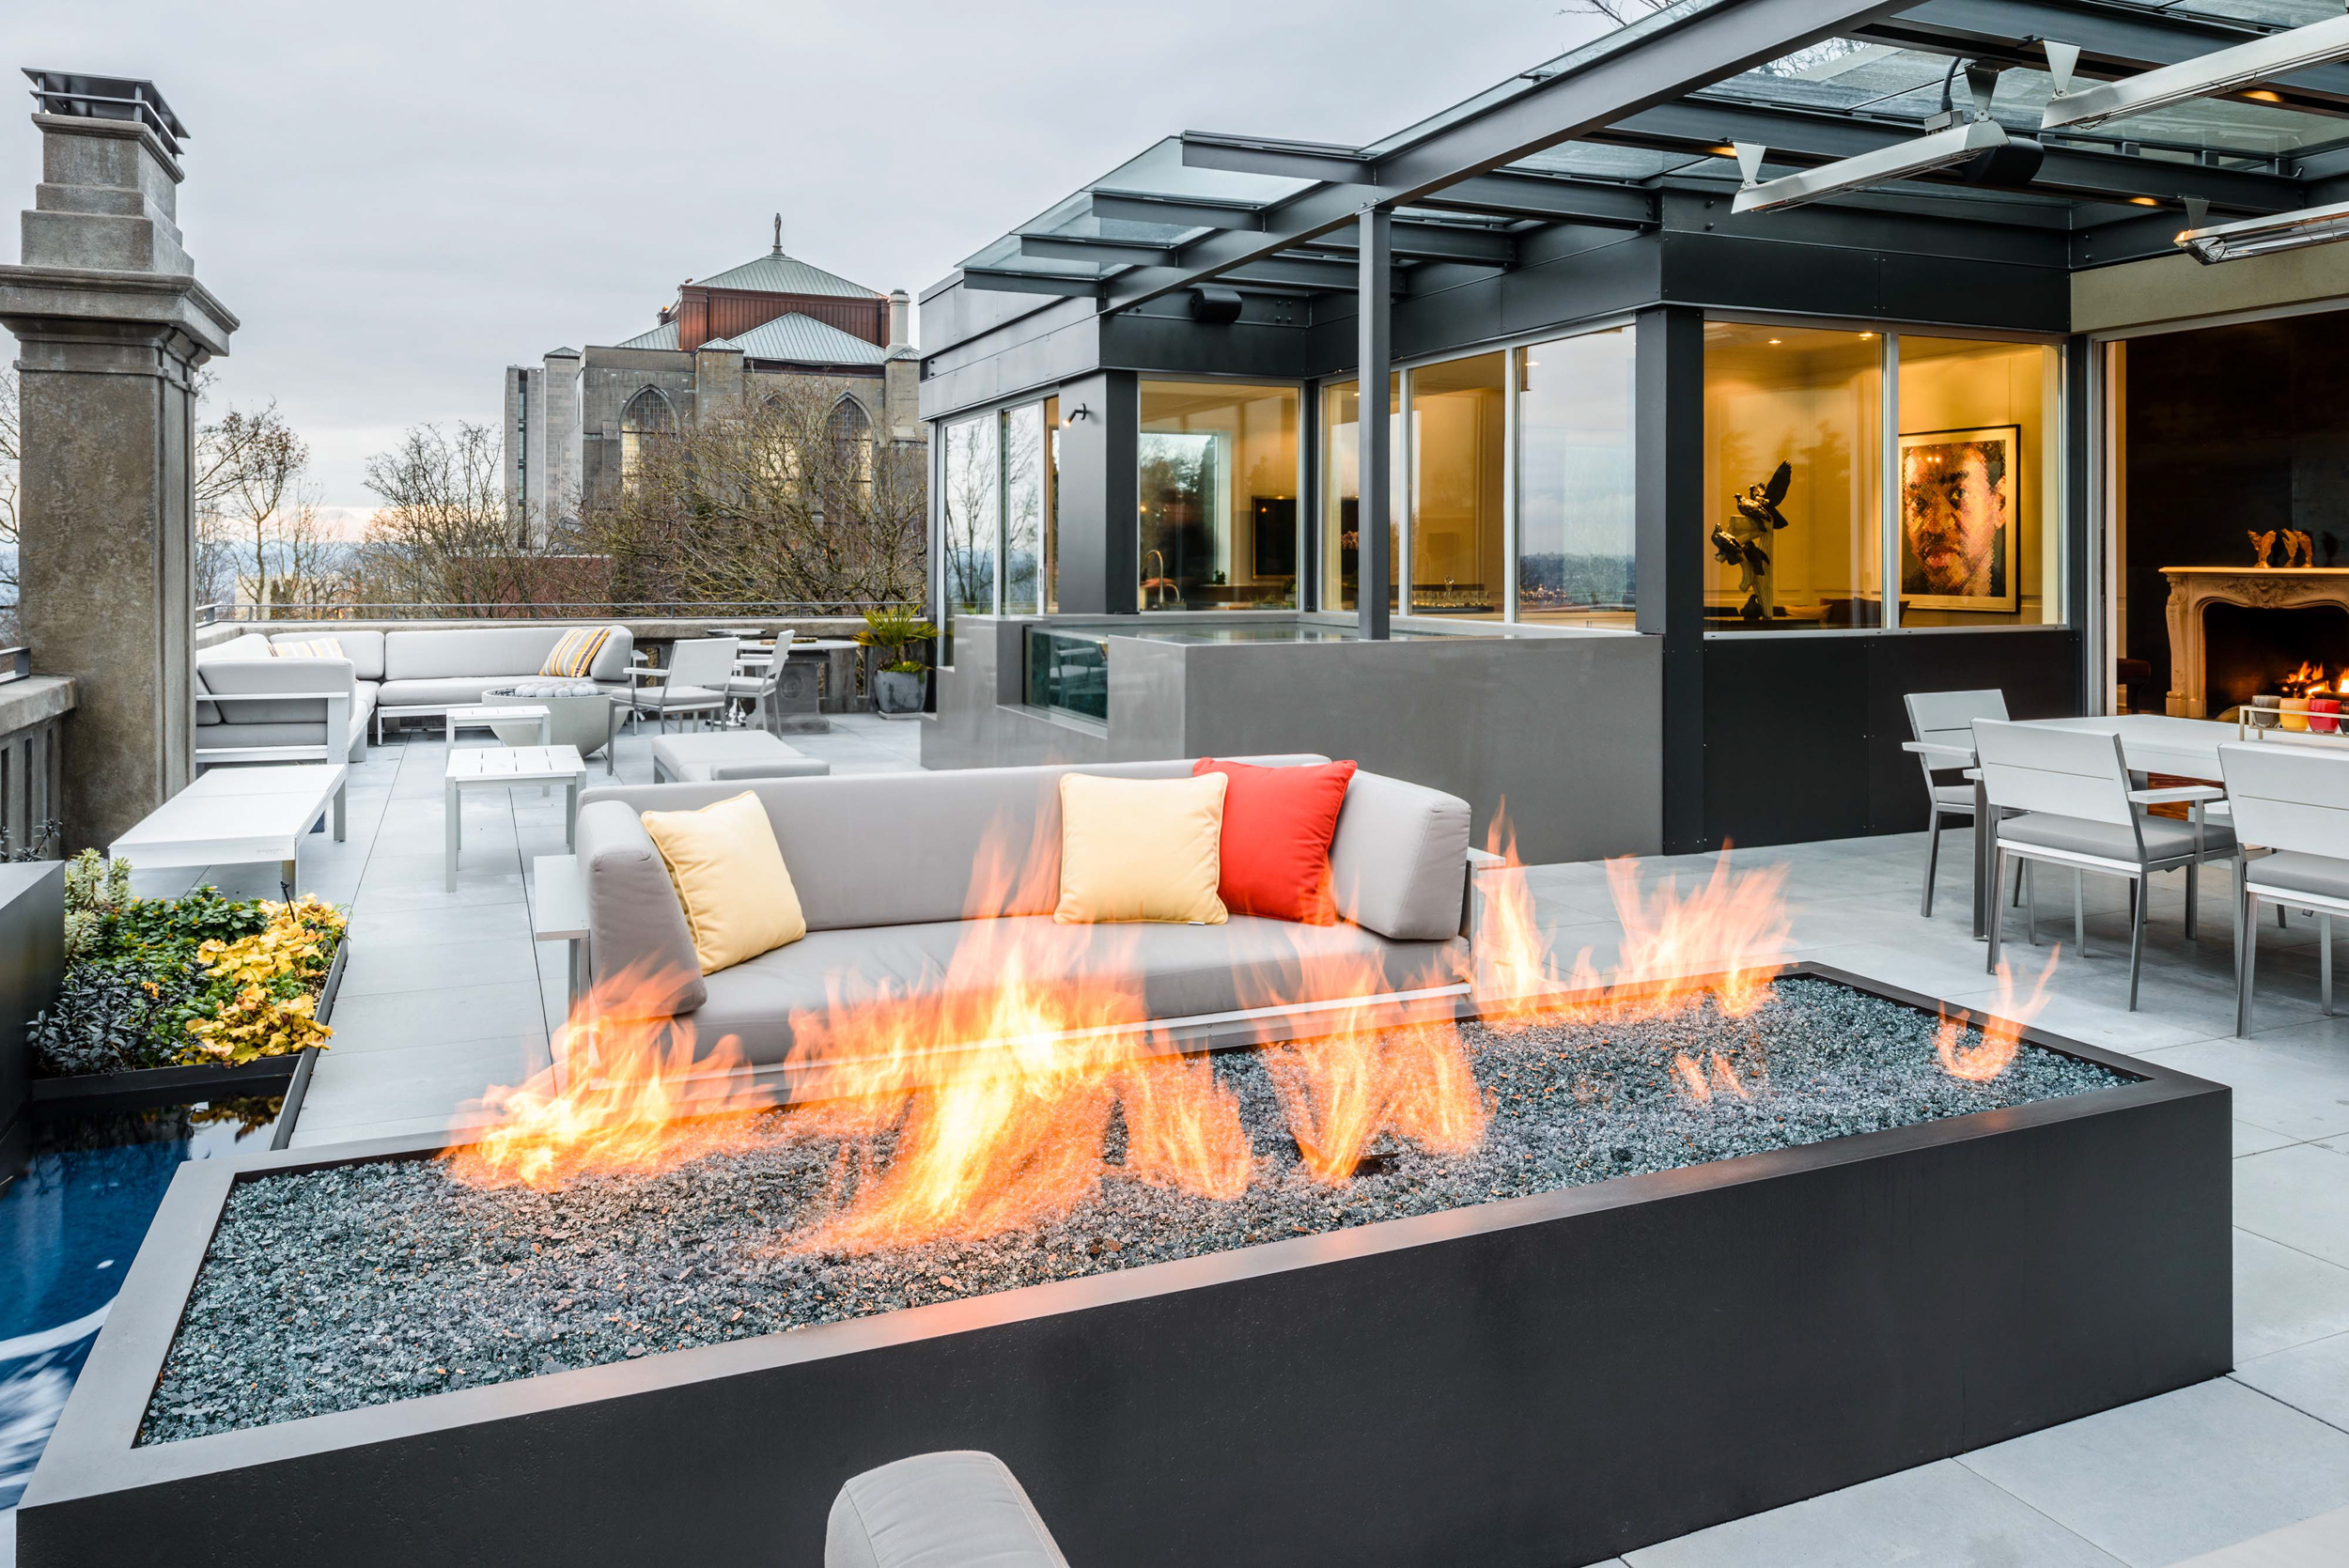 Modern roof garden with fire and water element